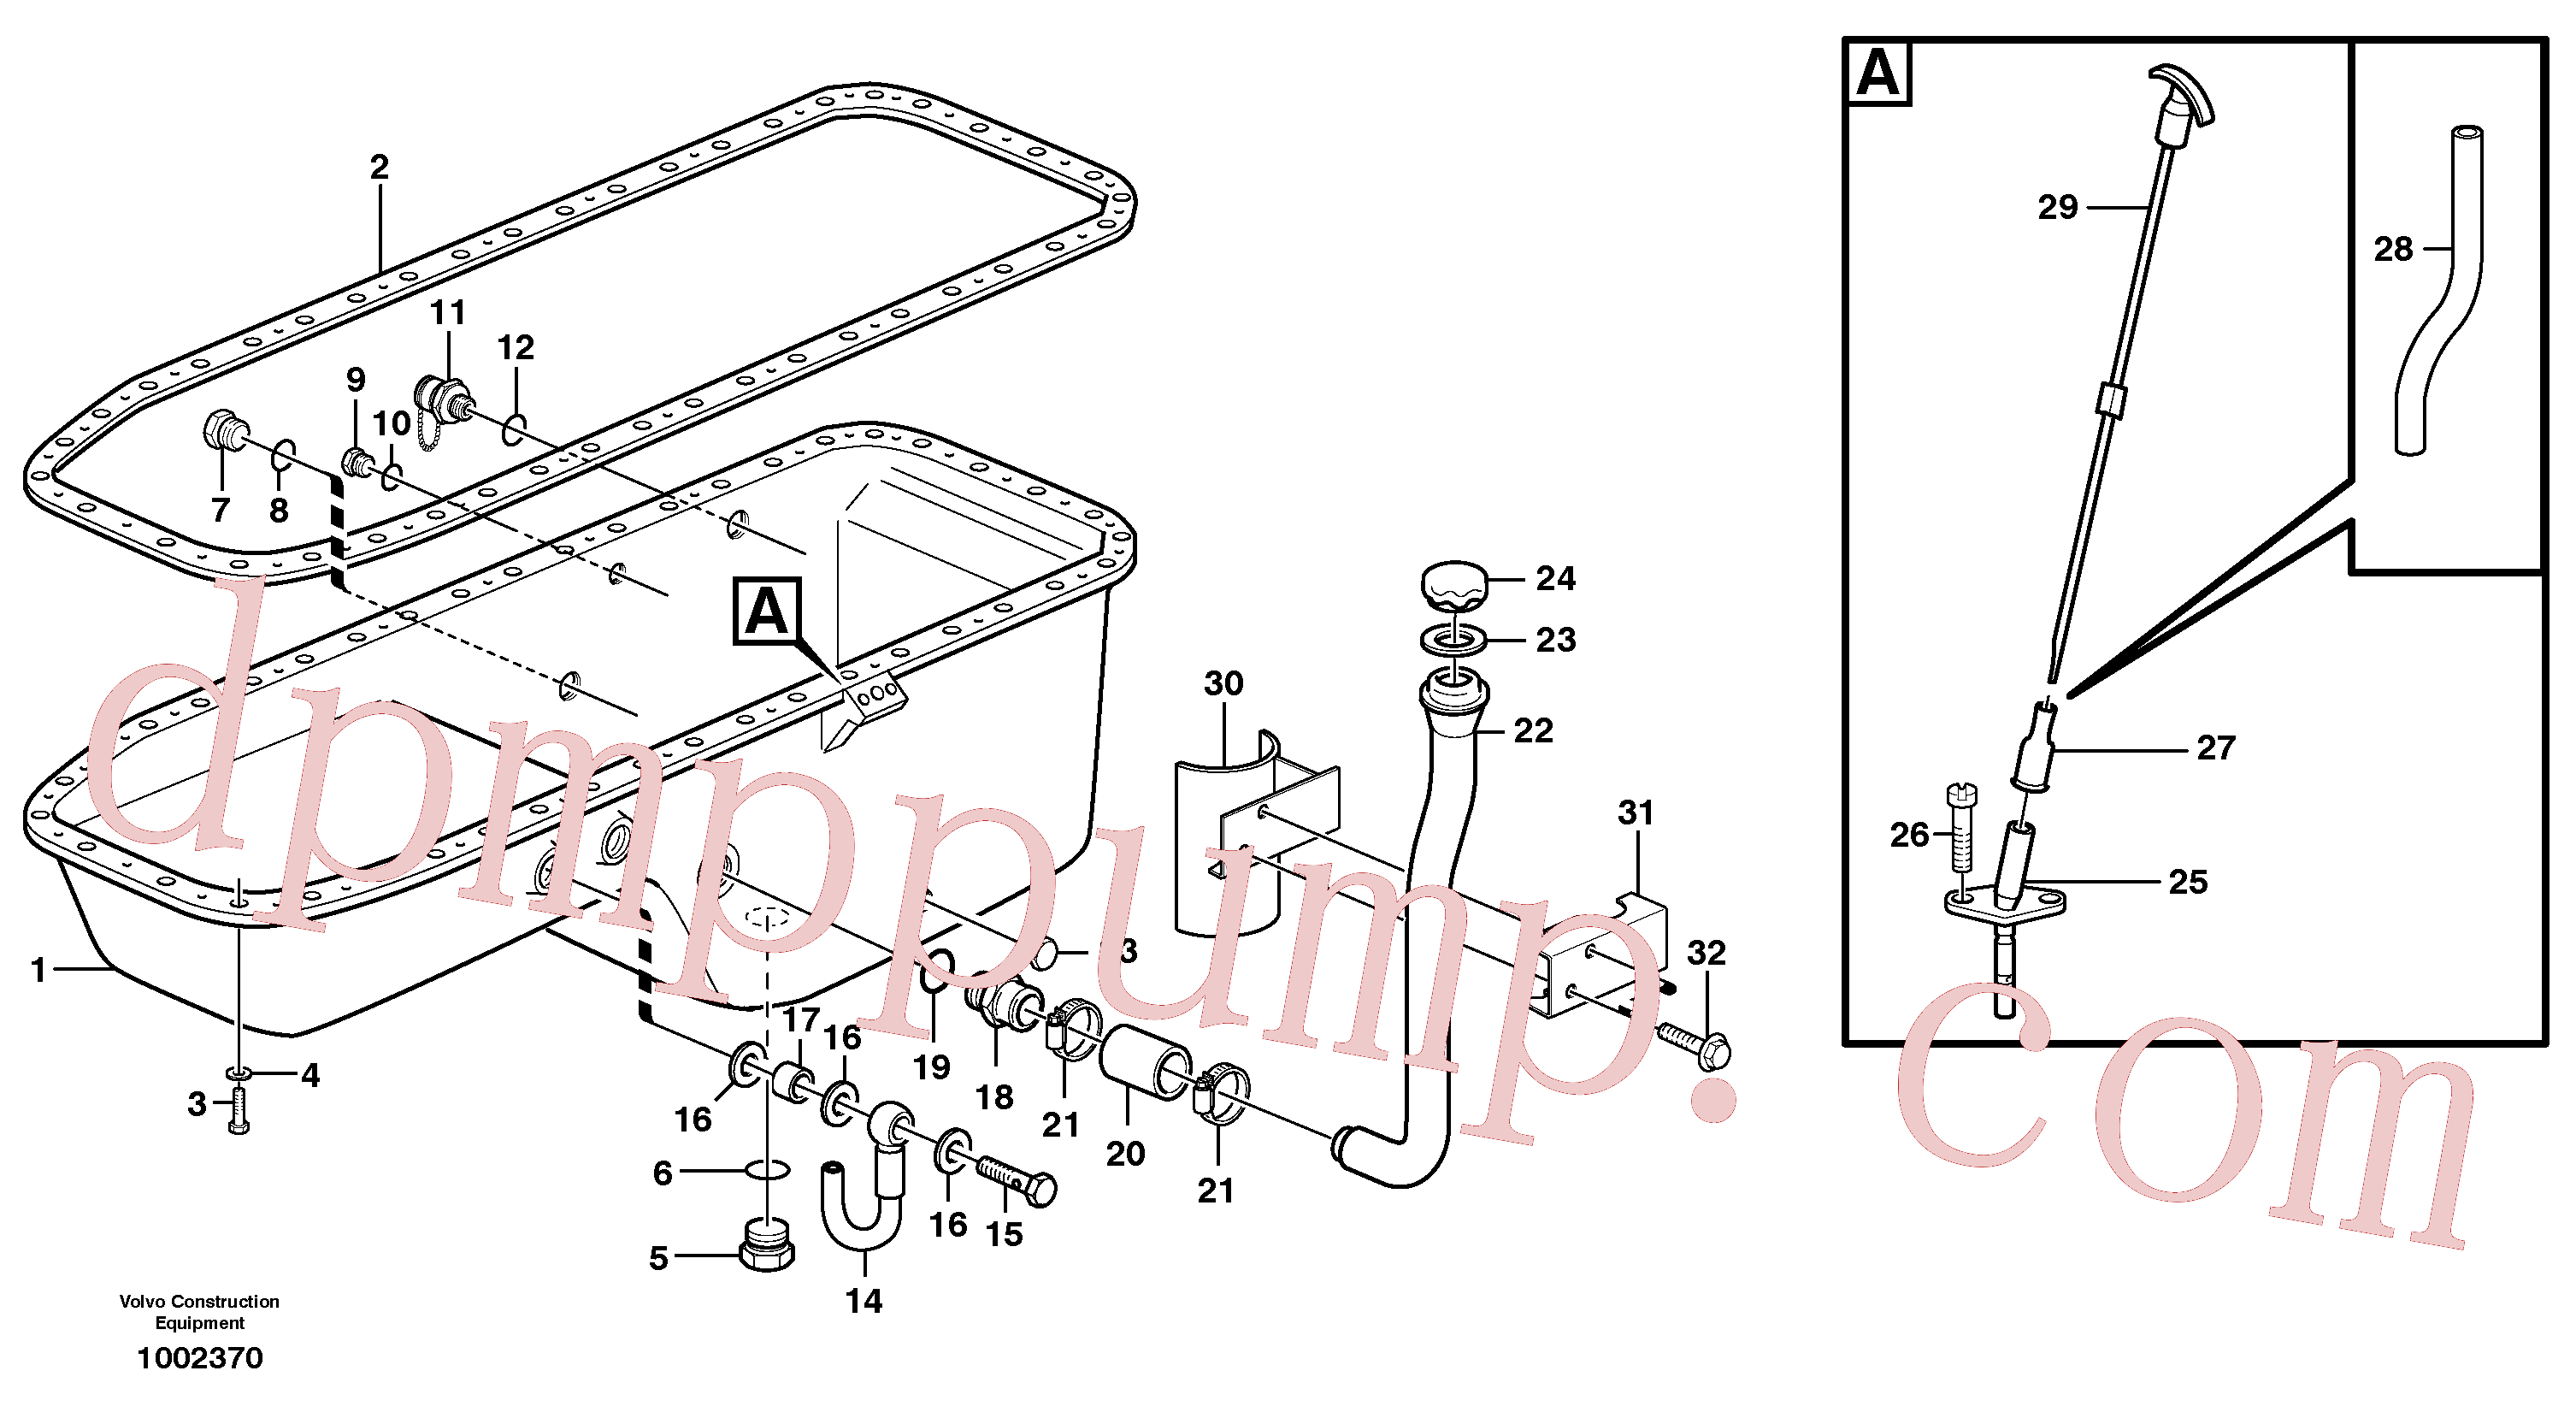 VOE940159 for Volvo Oil sump(1002370 assembly)